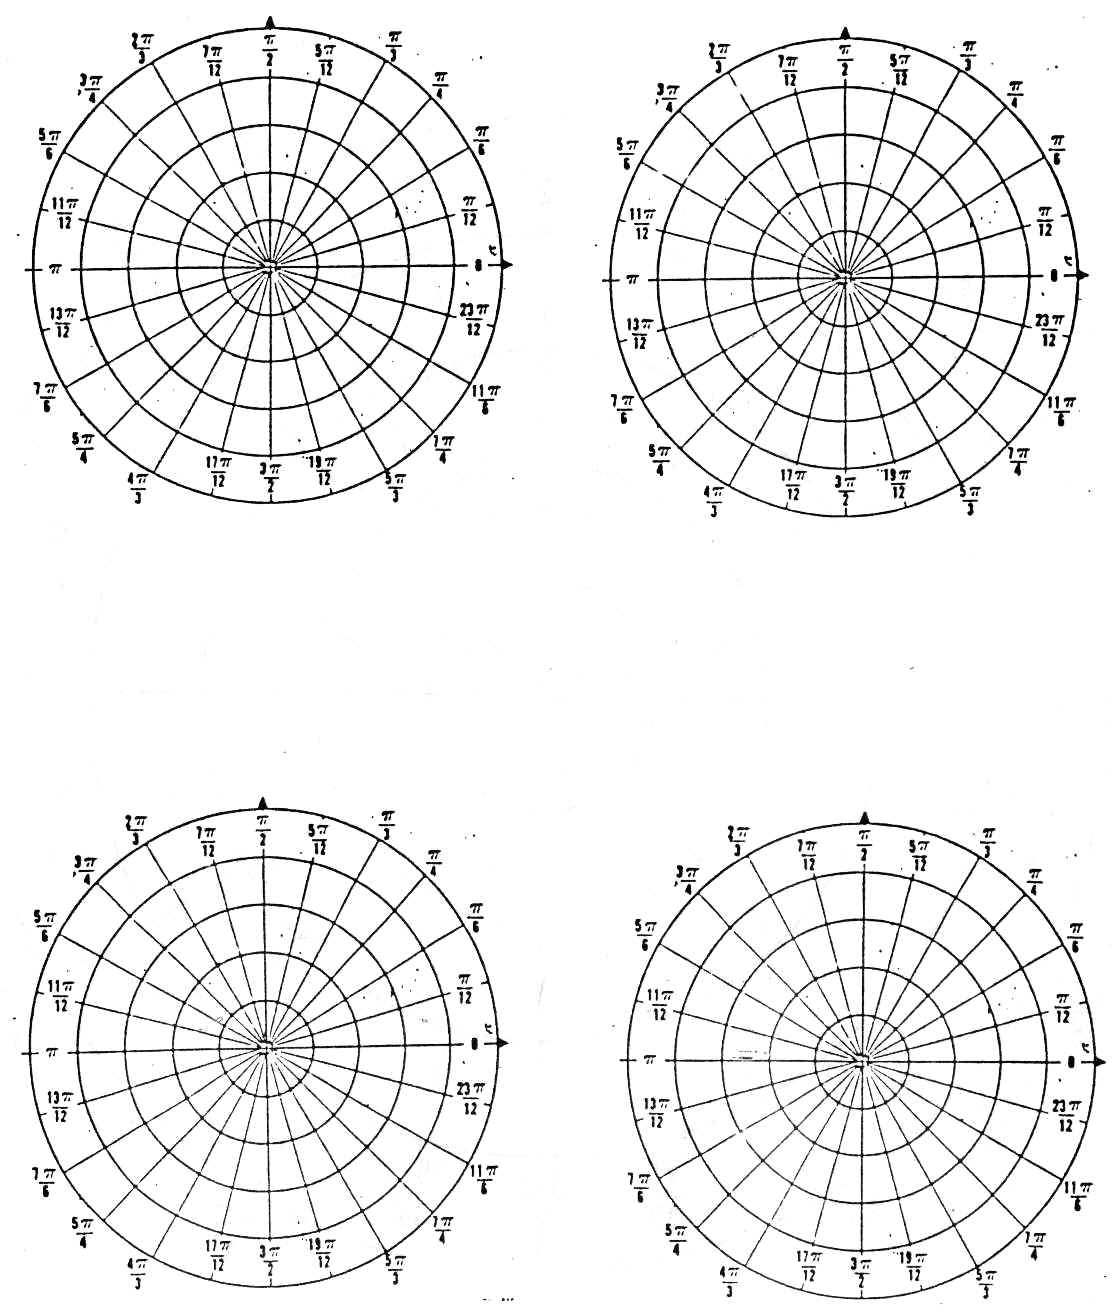 worksheet Polar Coordinate Graph similiar polar coordinate plane graph paper keywords images new calendar template site